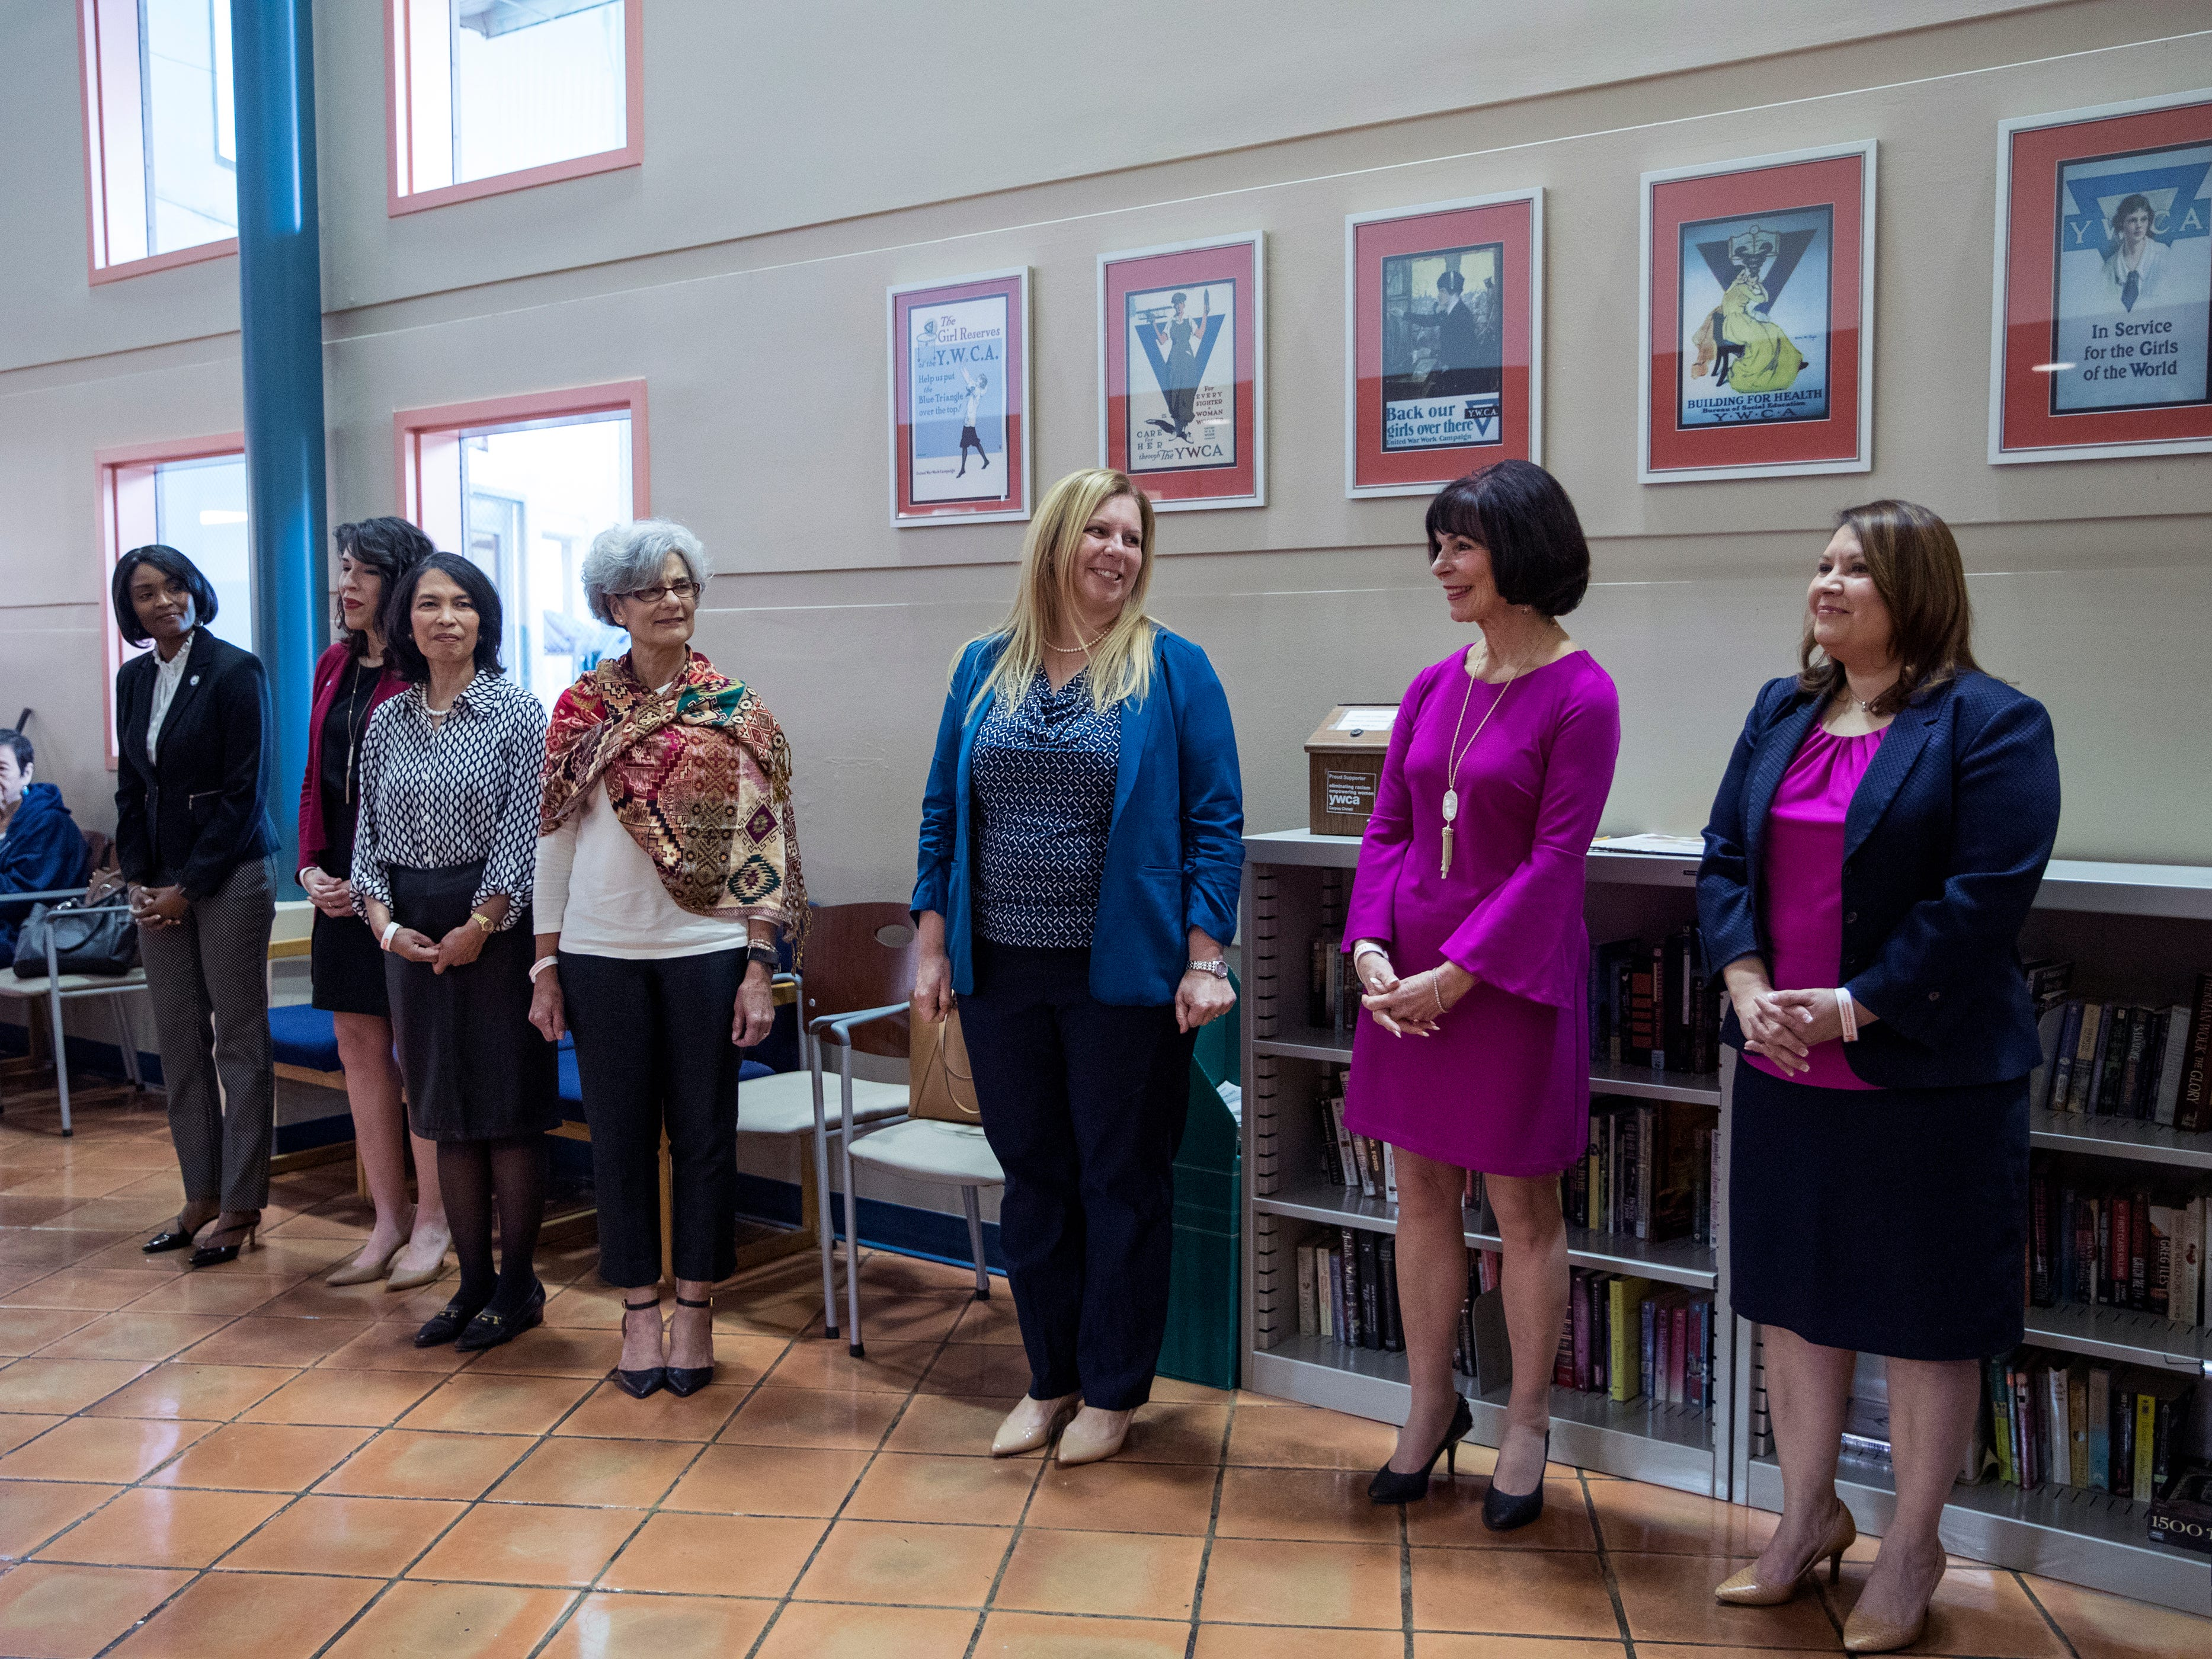 Liza Wisner (from left), Connie Rivera, Marita Rafael, Trina Martinez, Sarah Garza, Bunny D. Forgione and Starr Flores were revealed as this year's Y Women in Careers during an announcement at the YWCA on Thursday, January 10, 2019. Since 1979, 283 women have been honored.